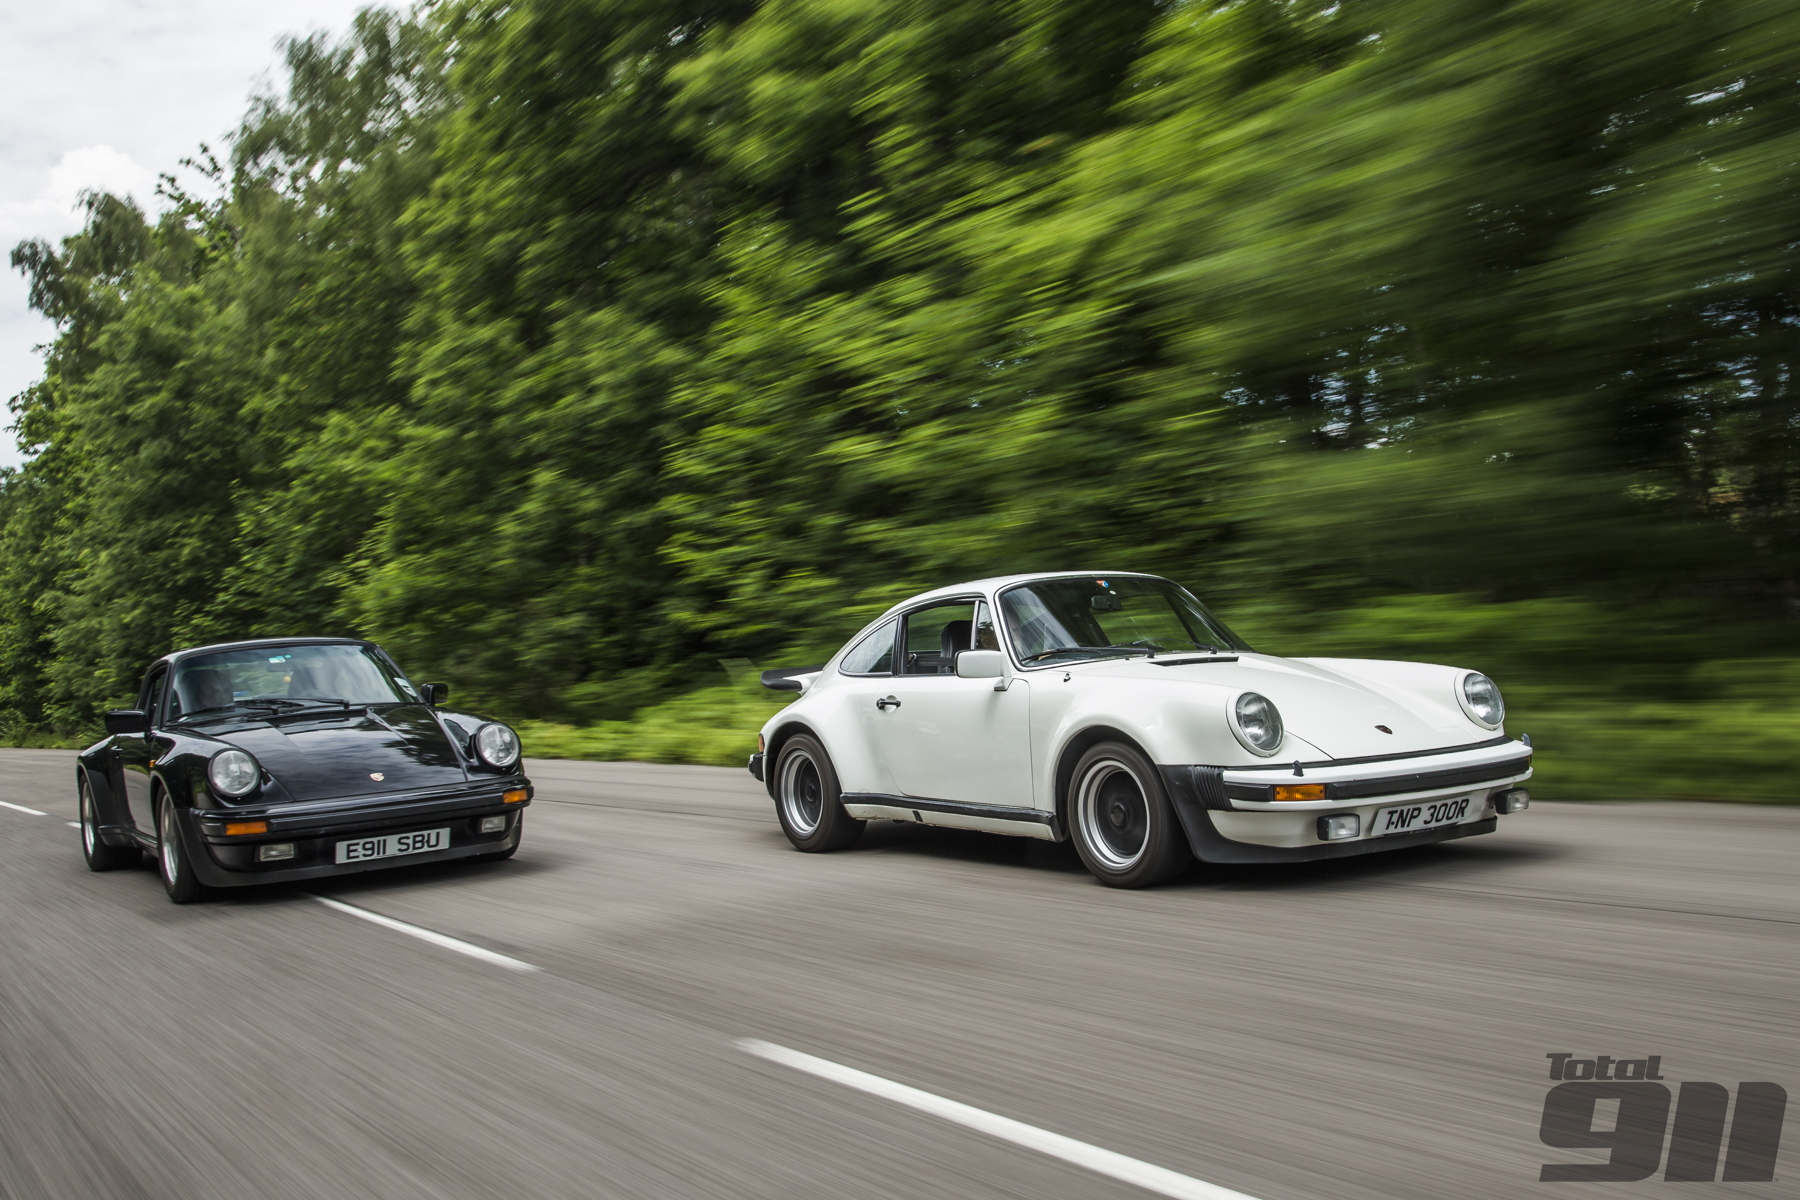 The original 911 Turbo was a icon bred from Porsche's motorsport development. Could a Hybrid follow in its wheel tracks?